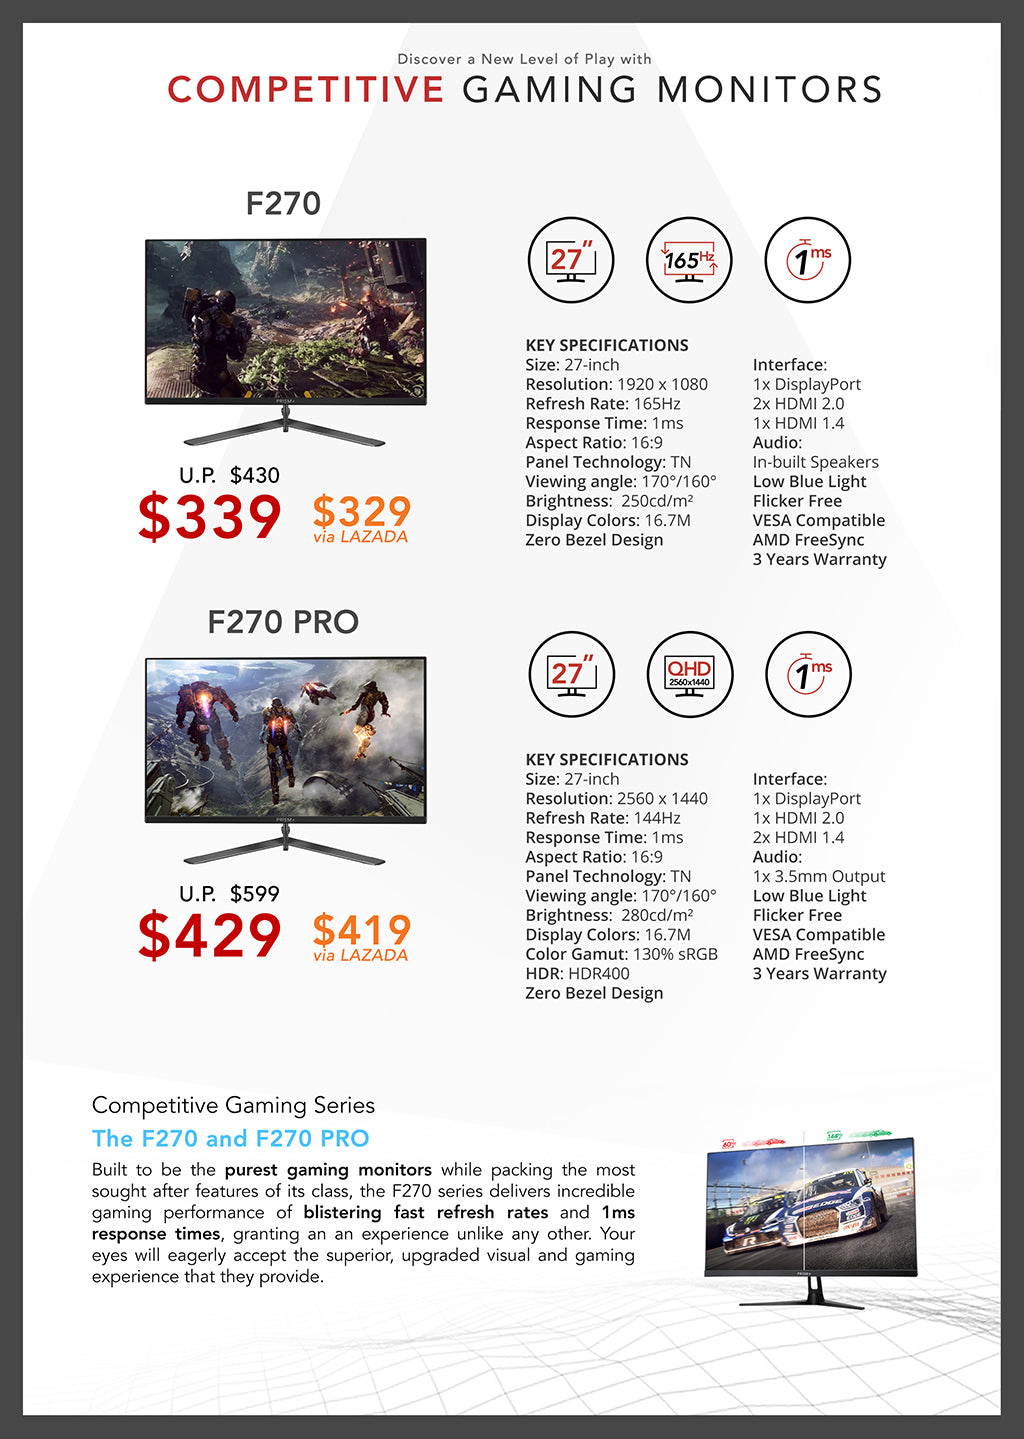 PC Show 2019 Brochure Page 4 (Competitive Gaming)